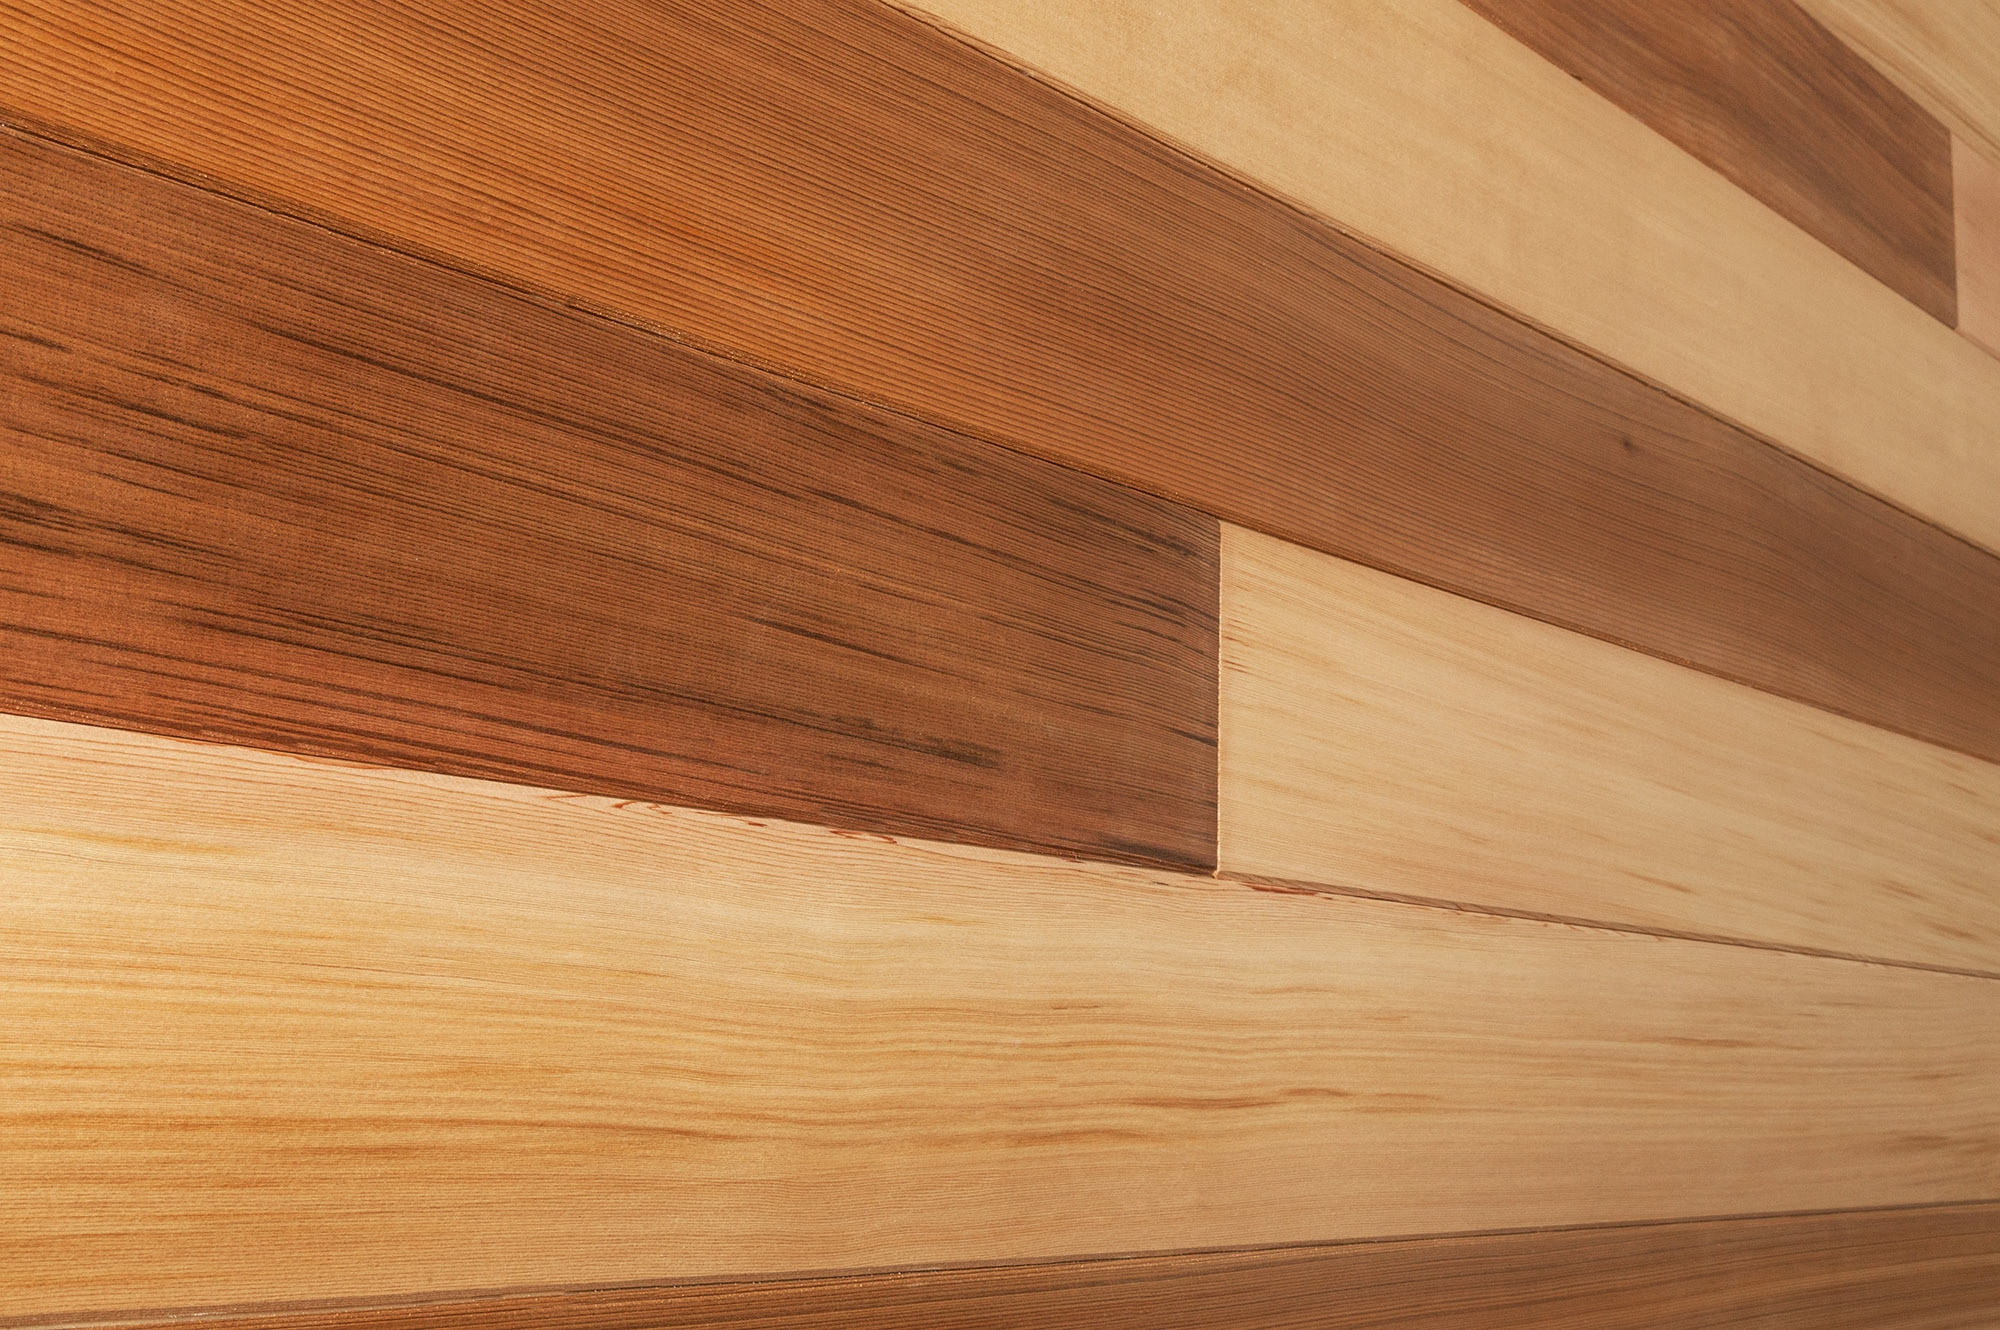 Cedar west tongue and groove vg clear engineered tongue for Engineered wood siding options